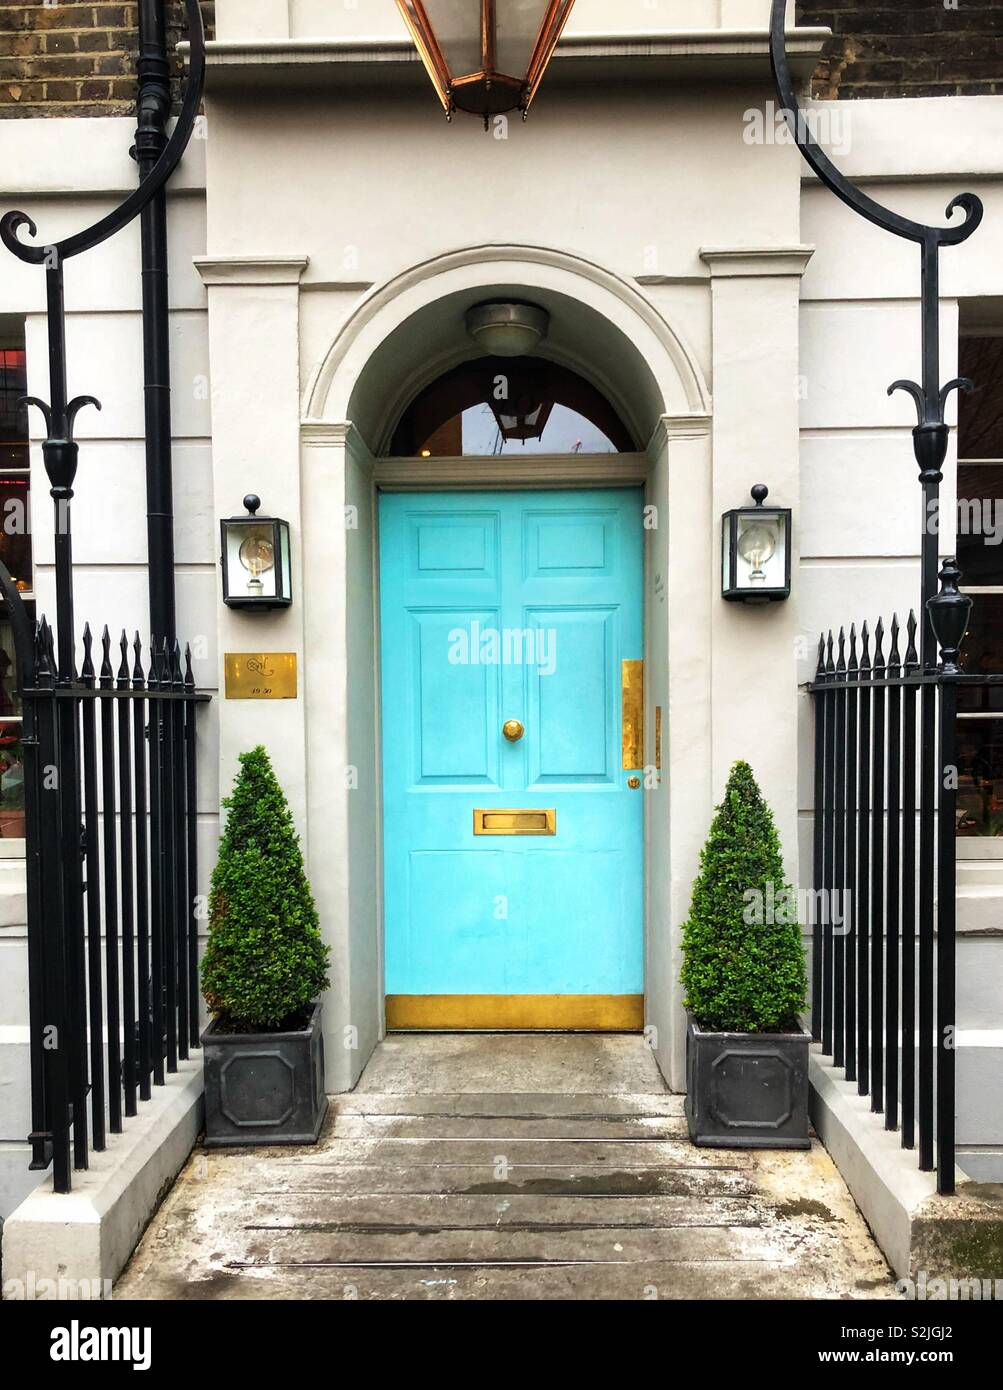 A Quaint Home In London England A Bright Cheery Turquoise Blue Front Door Flanked By Topiary Trees Stock Photo Alamy